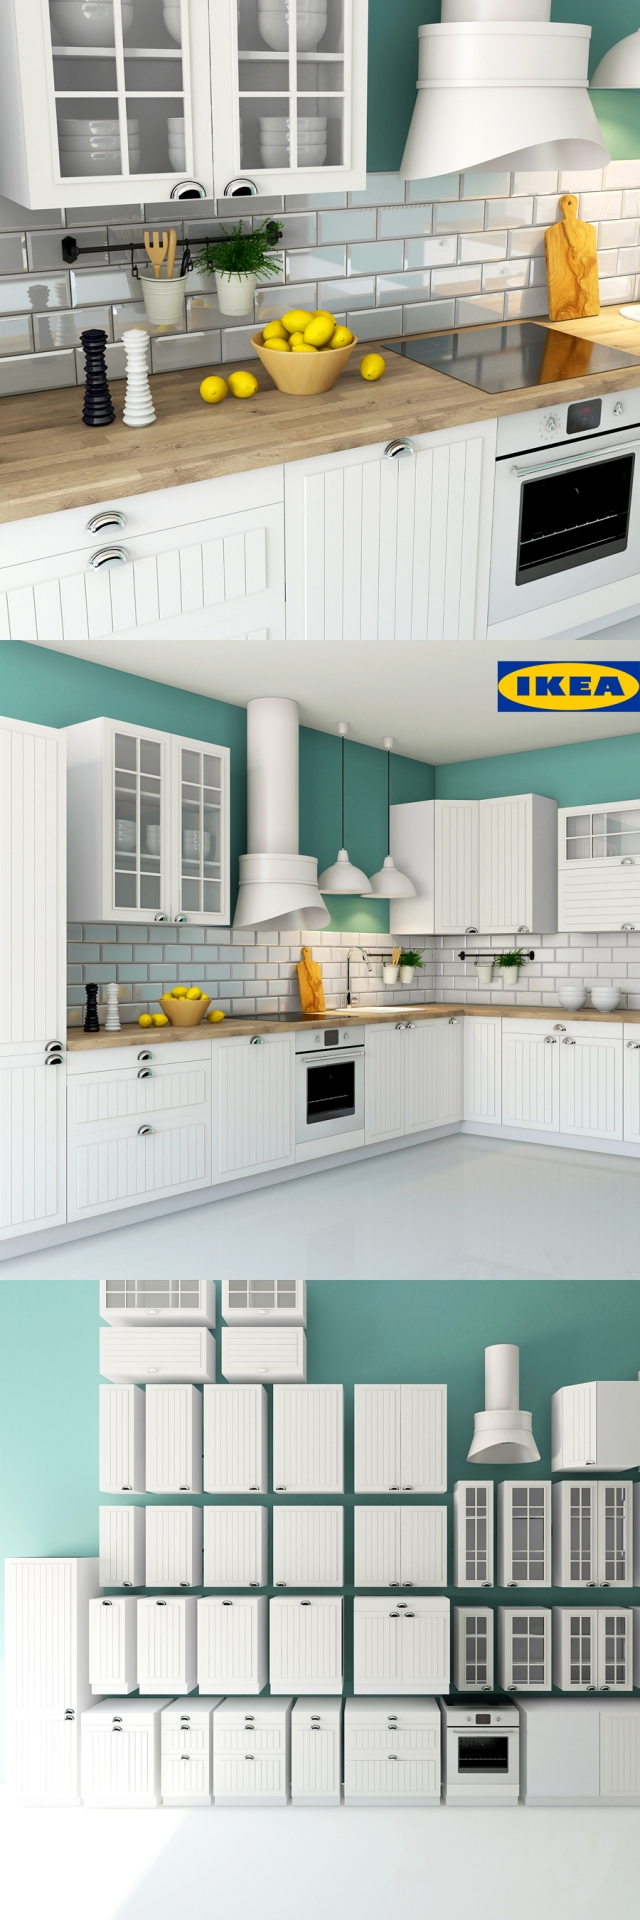 ikea faktum download manual others ikea faktum onderkast with ikea faktum ikea faktum fronter. Black Bedroom Furniture Sets. Home Design Ideas